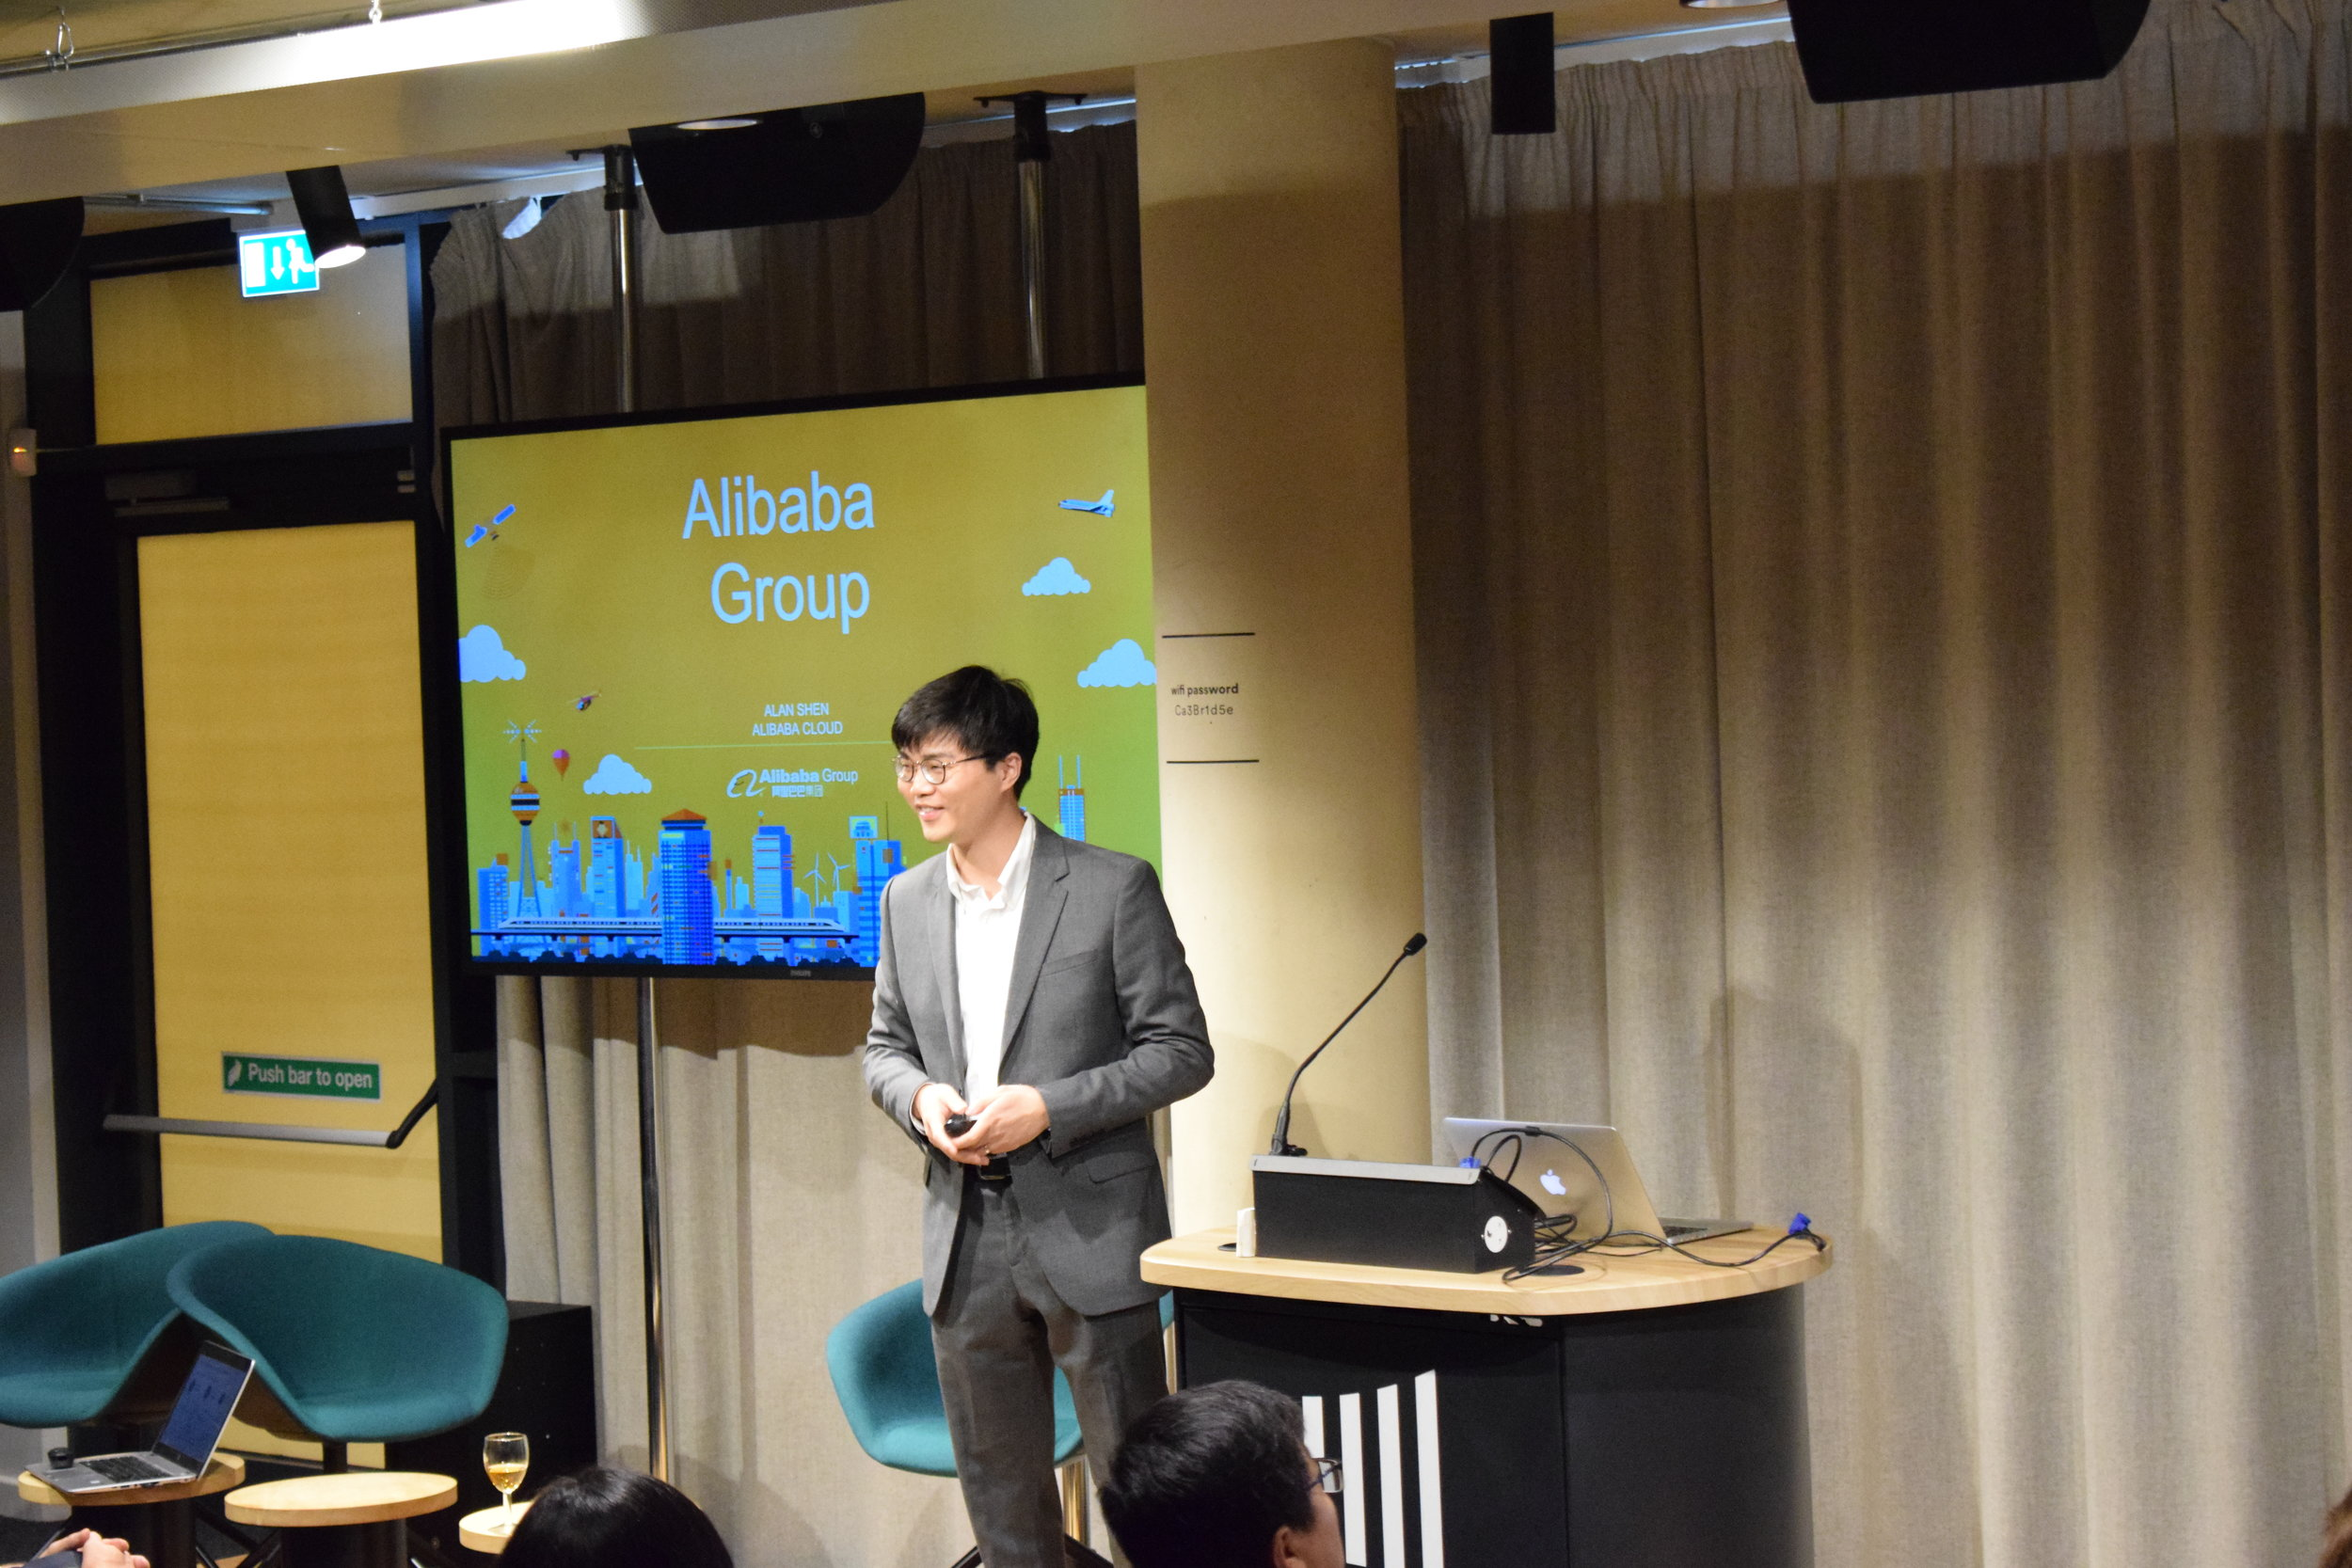 Alan Shen, Cloud Business Development Manager of Alibaba